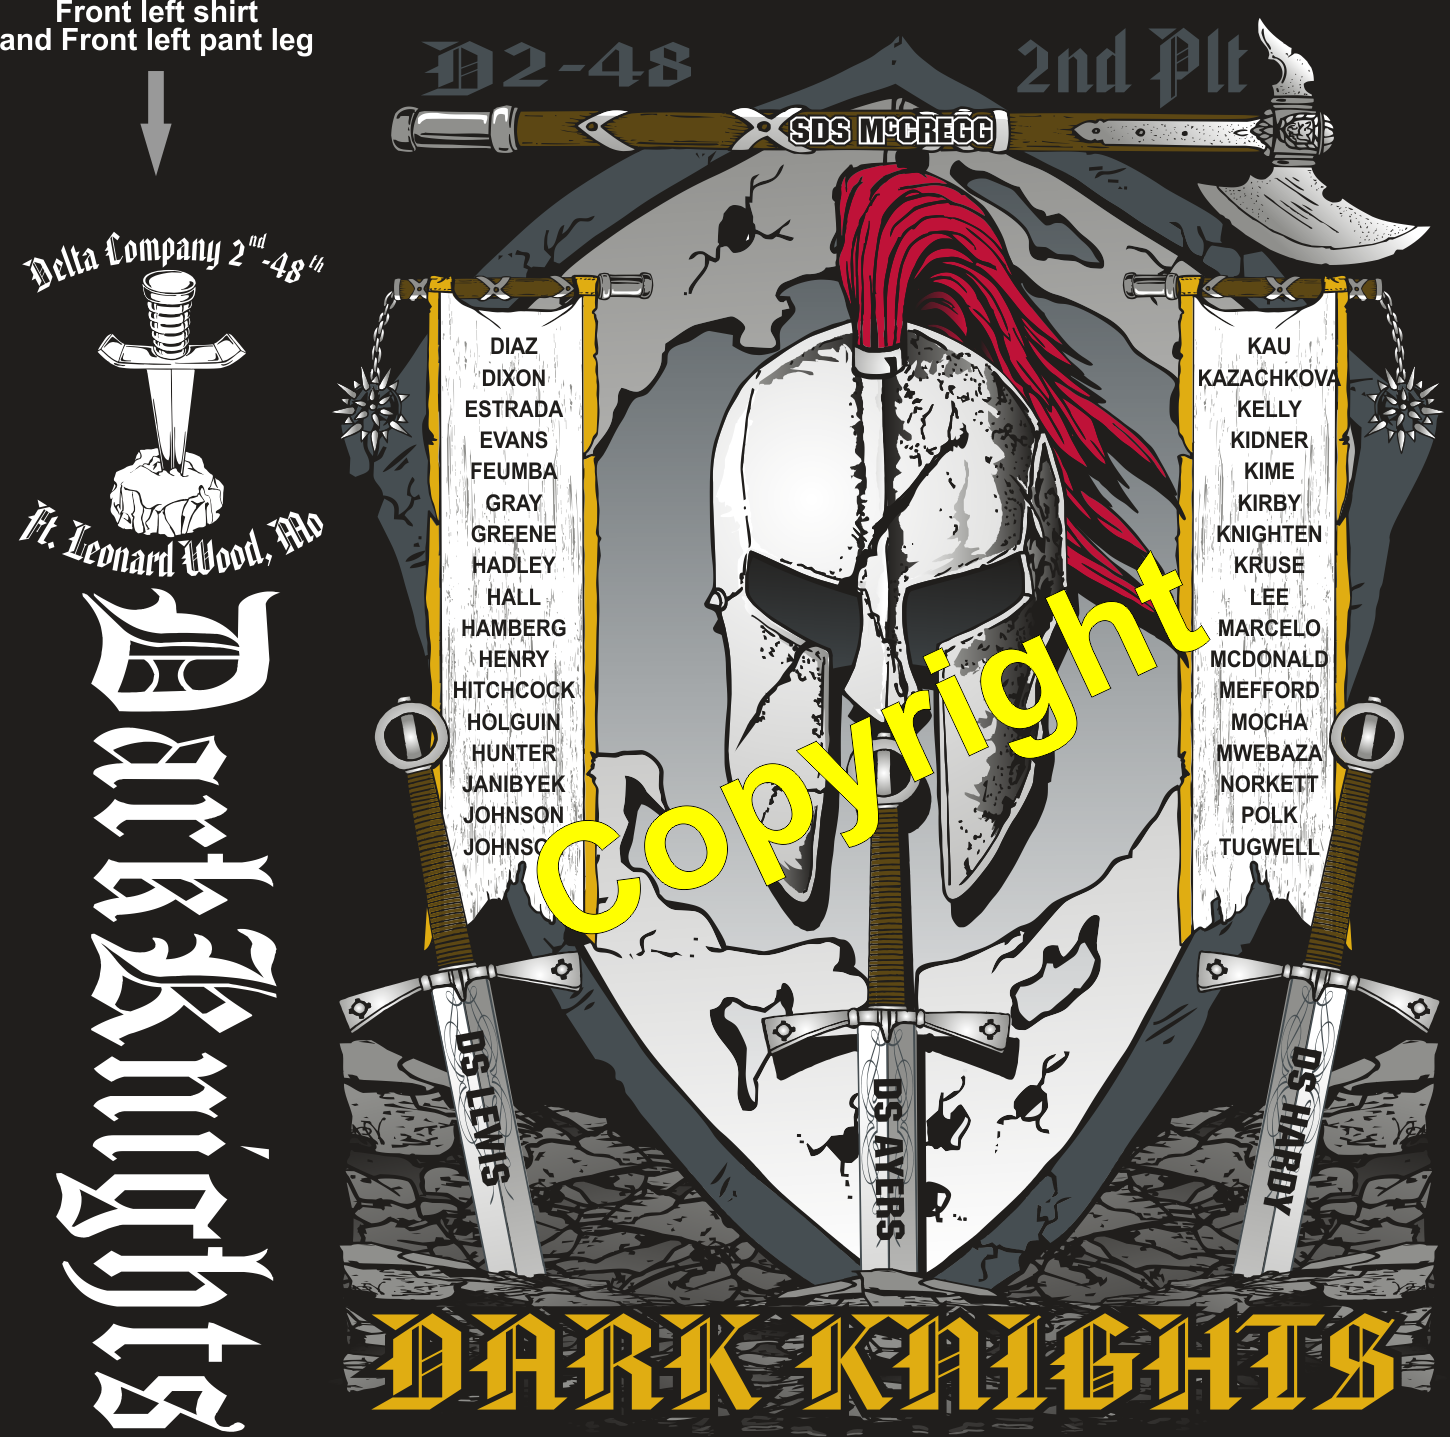 DELTA 248 DARK KNIGHTS GRADUATING DAY 7-3-2019 digital